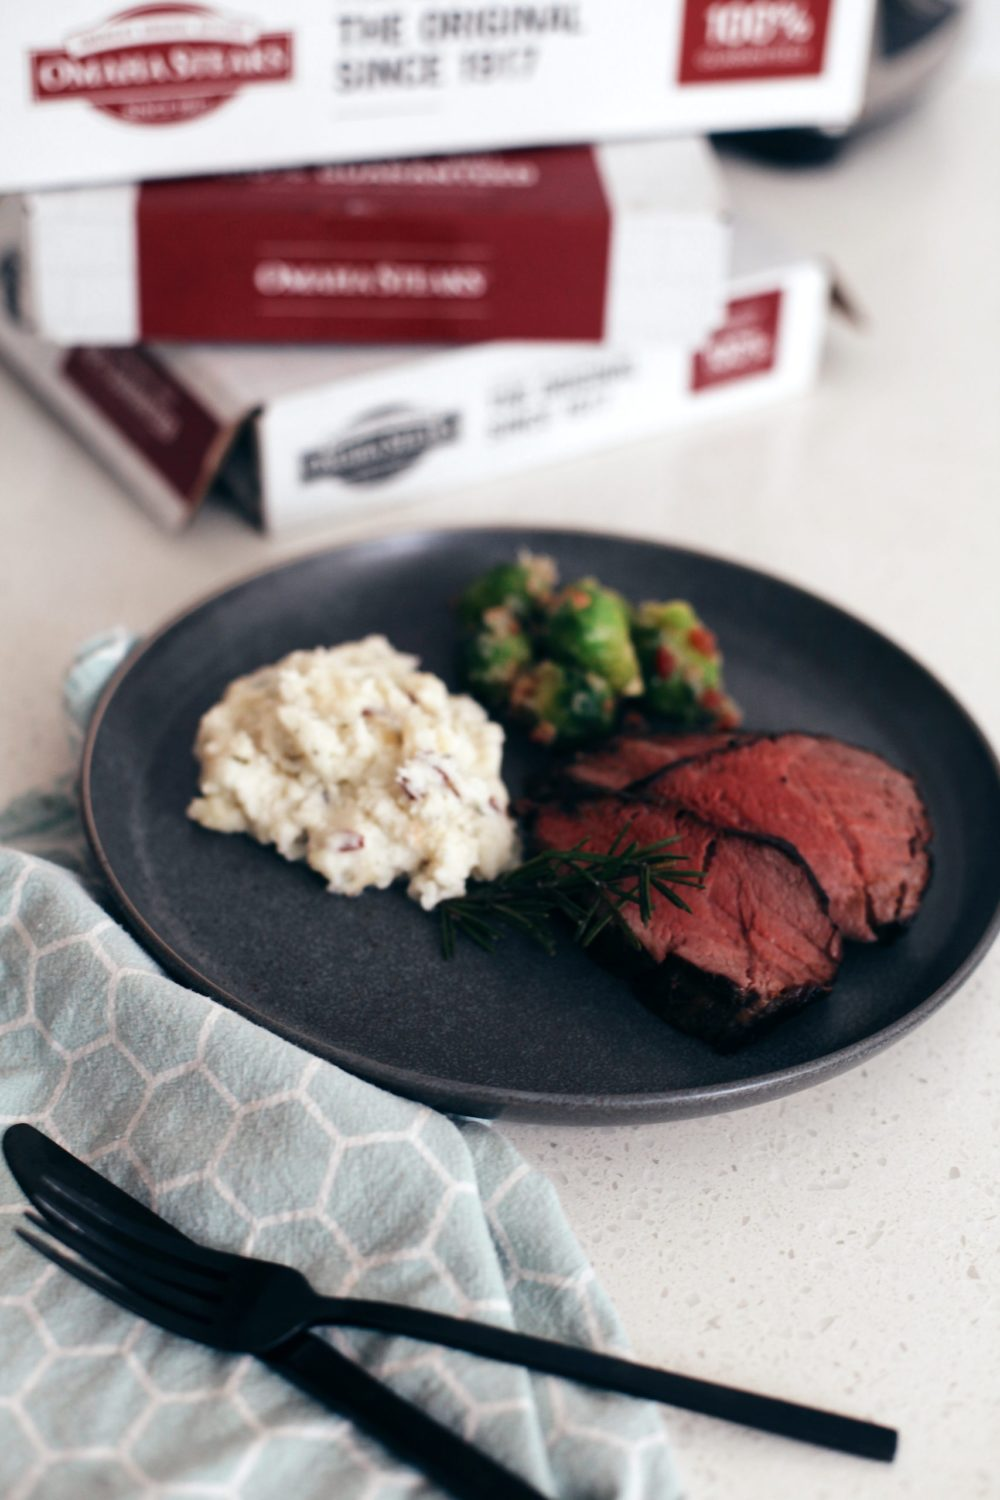 Best Way to Cook Beef Tenderloin with Espresso Crusted Chateaubriand Recipe from top Florida lifestyle blogger Tabitha Blue of Fresh Mommy Blog. How to get deliciously tender steak every time and the best coffee steak rub. | Best Beef Tenderloin by popular Florida lifestyle blog, Fresh Mommy Blog: image of the best Espresso Crusted Chateaubriand beef tenderloin on a plate with mashed potatoes and brussels sprouts.